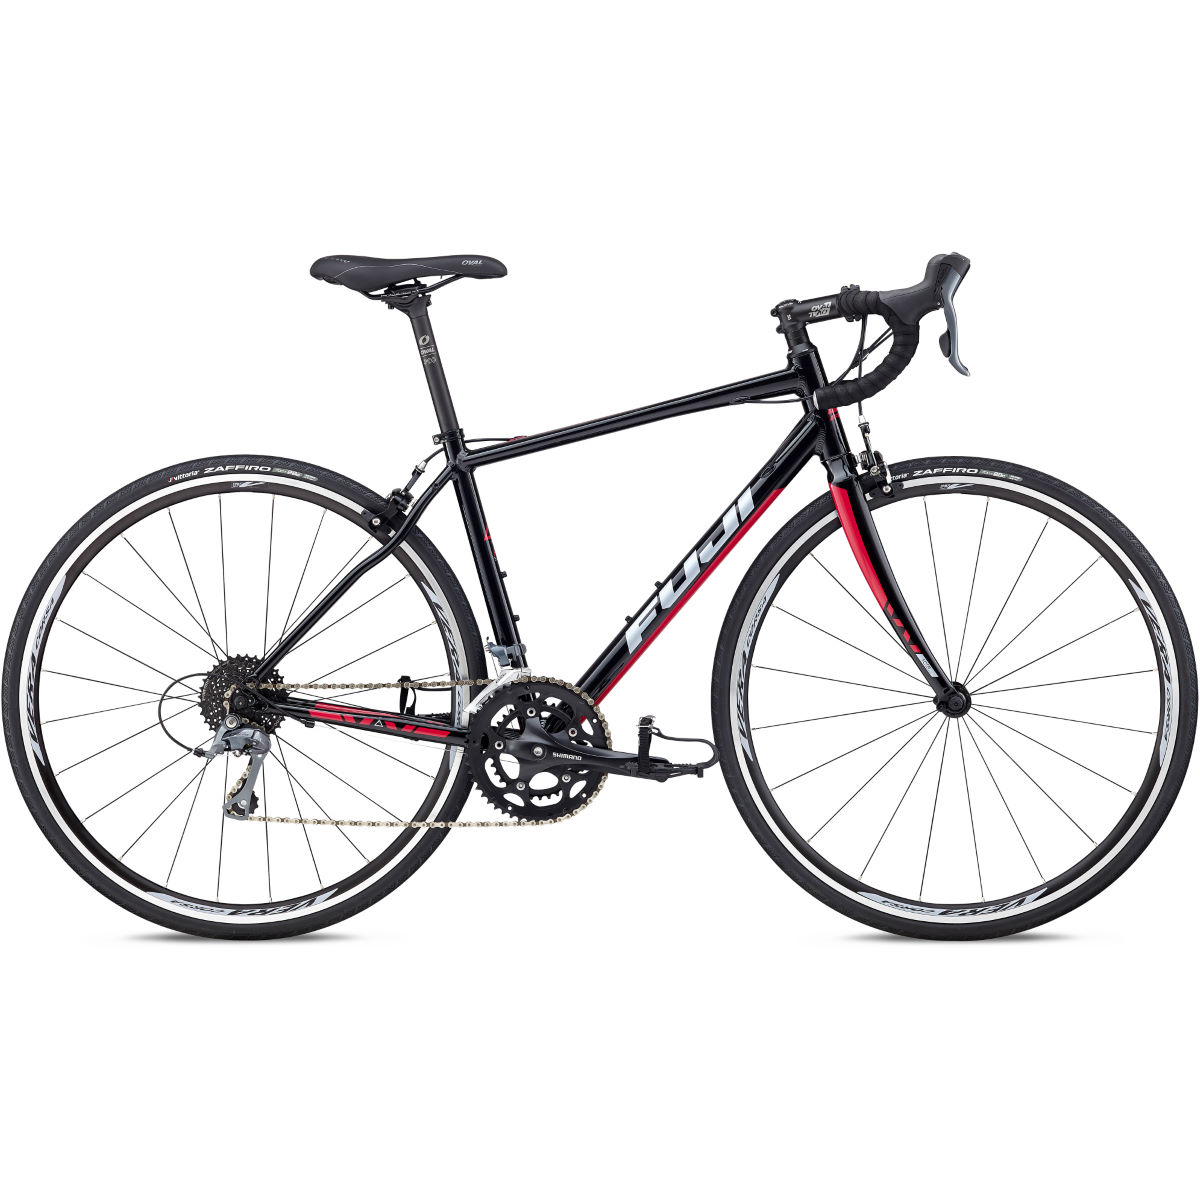 Vélo de route Fuji Finest 2.3 - 44cm Stock Bike Black/Raspberry